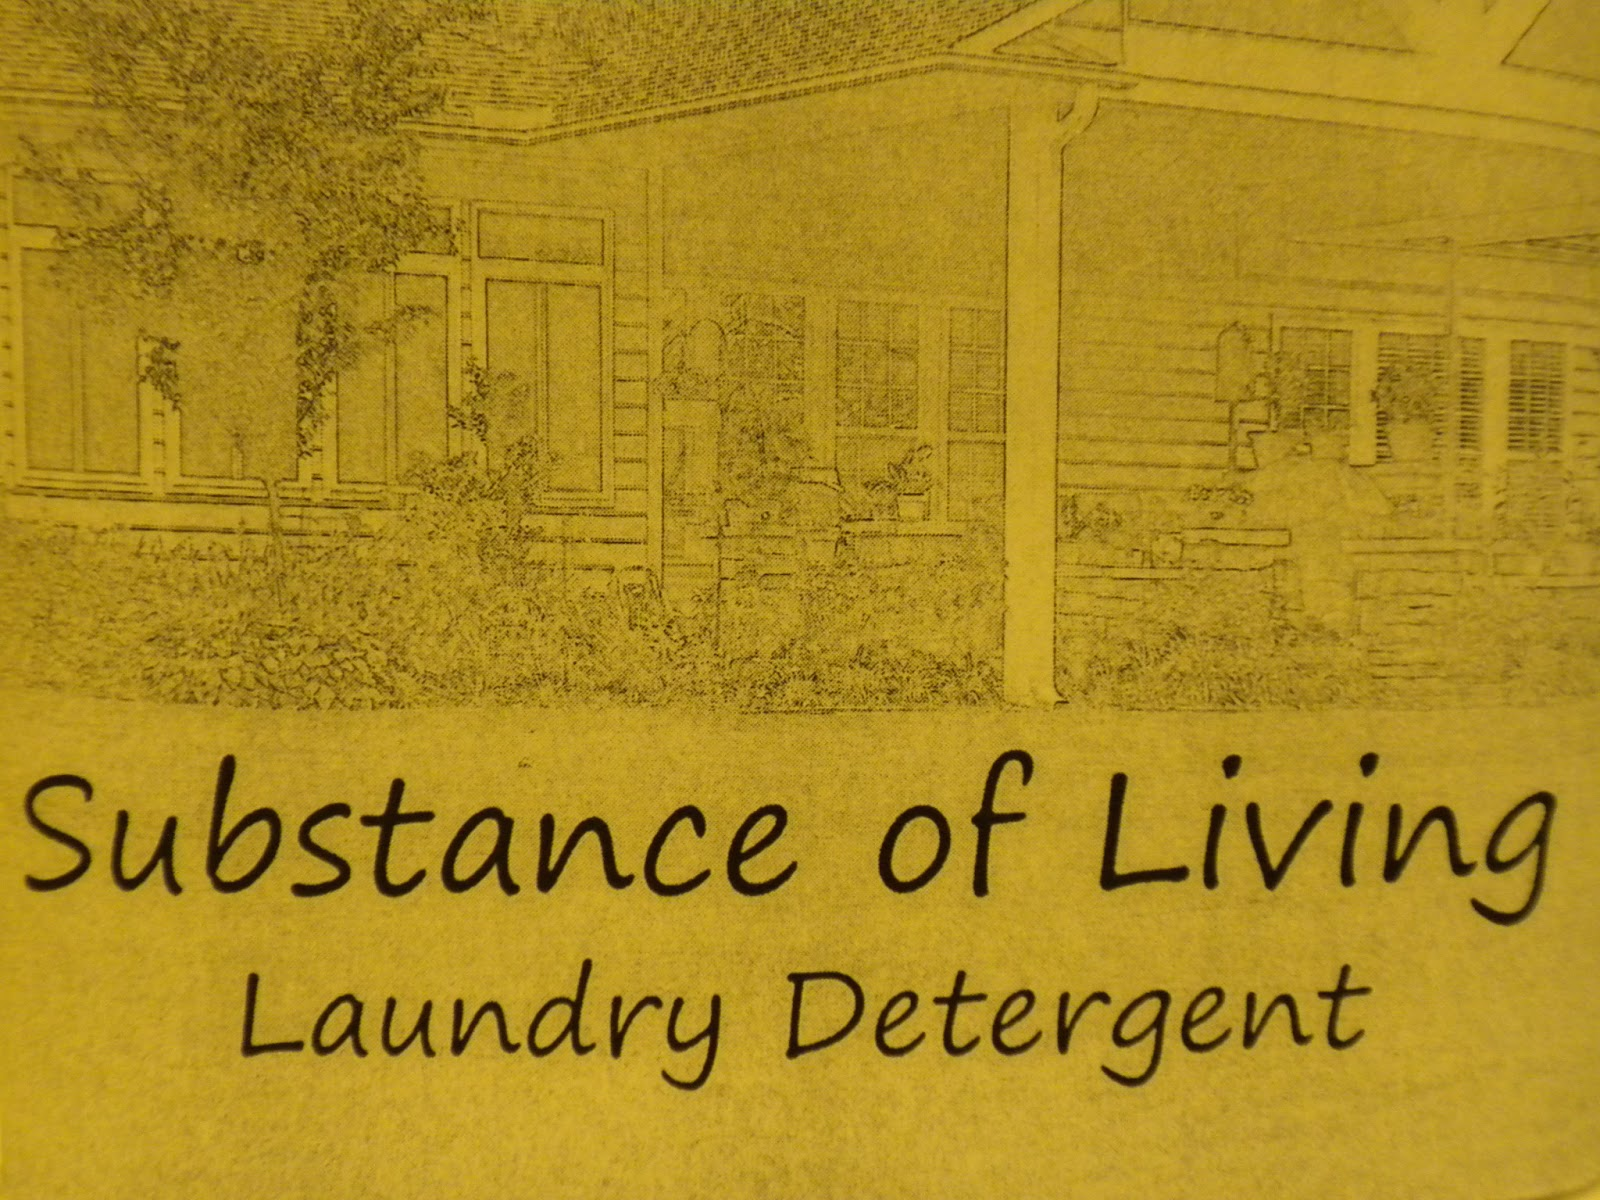 Substance of Living Laundry Detergent Label